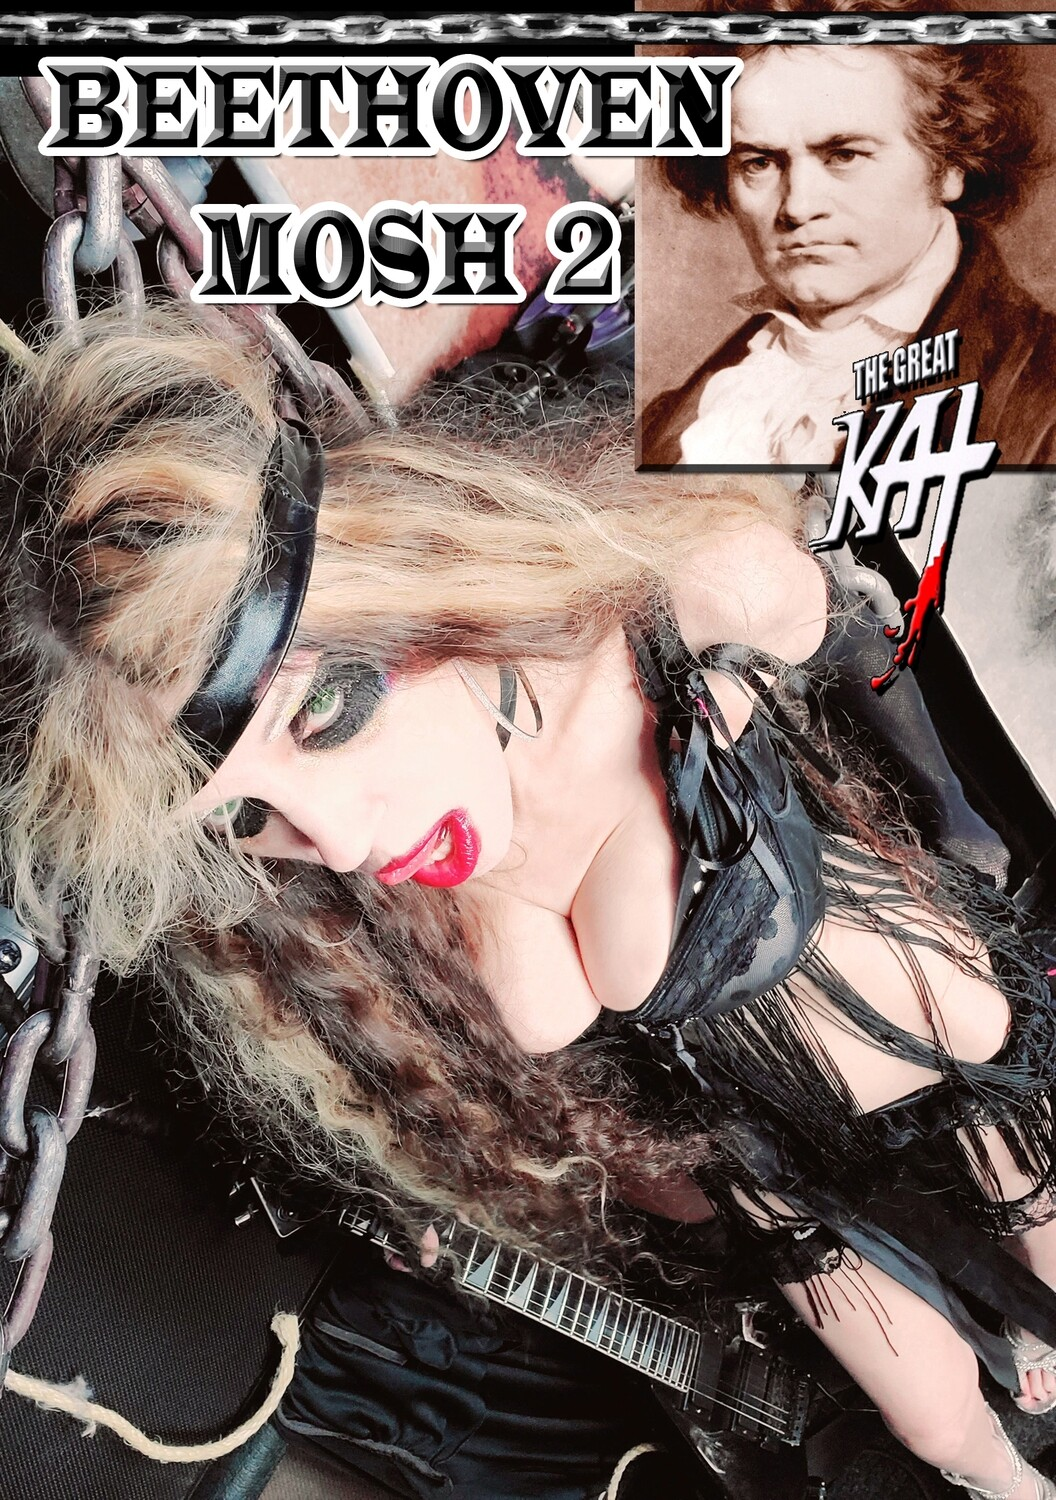 THE GREAT KAT is GOD, the REINCARNATION of BEETHOVEN and YOUR METAL MESSIAH and SAVIOR! Personalized Autographed HOT GREAT KAT 8x10 Glossy Color Photo